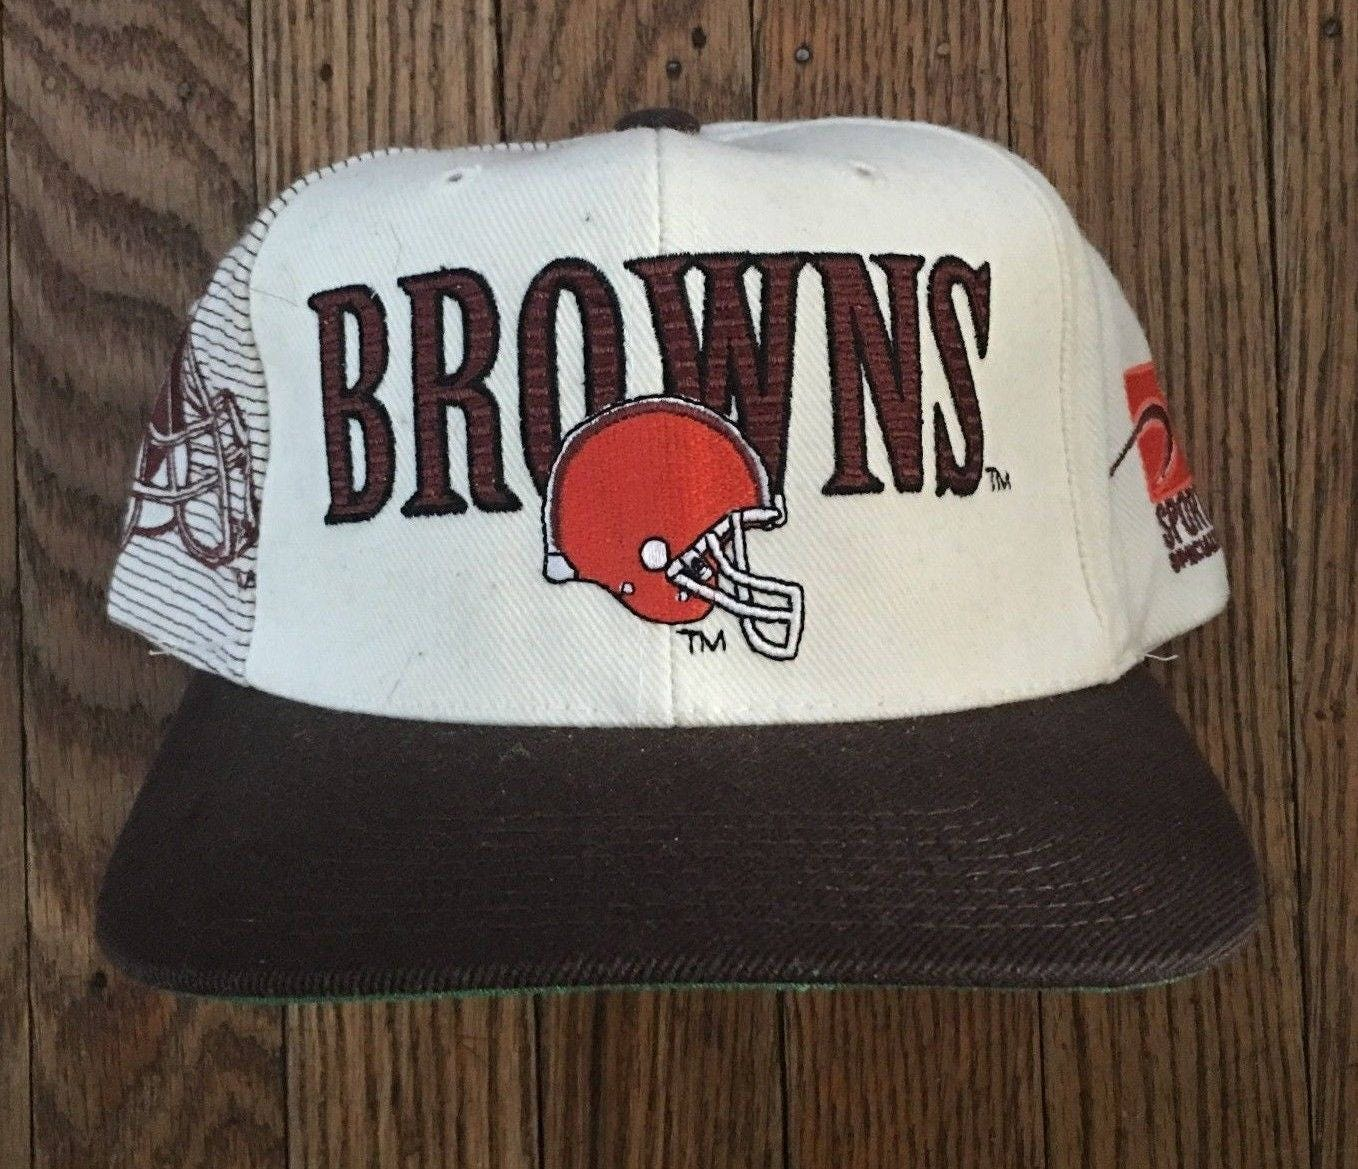 0d6094bd477 Vintage Cleveland Browns Sports Specialties NFL Snapback Hat Baseball Cap